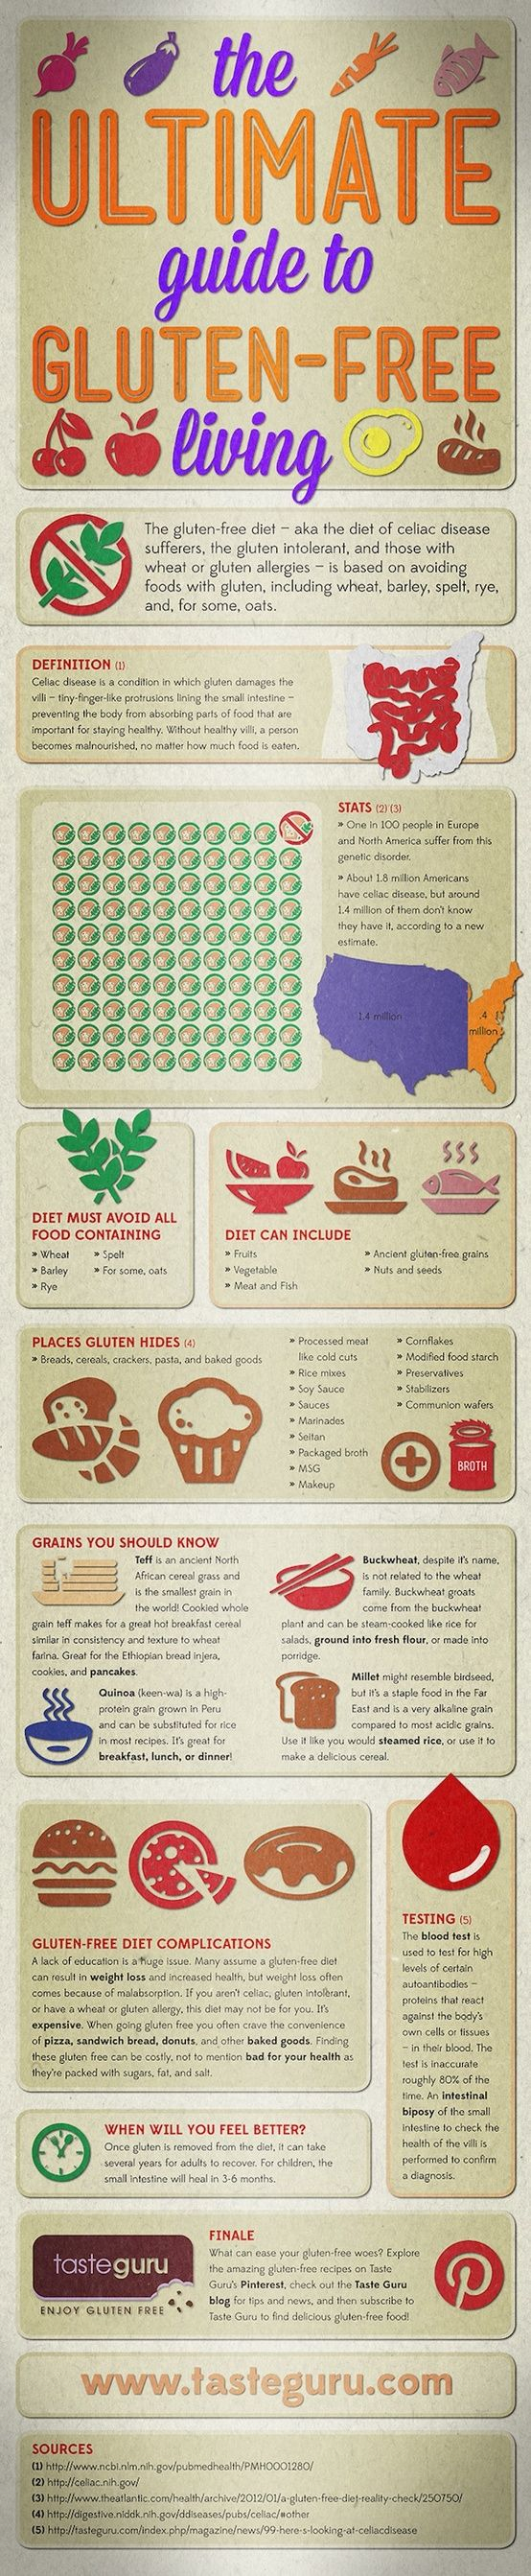 The Ultimate Guide to Gluten Free Living. How helpful is this?!